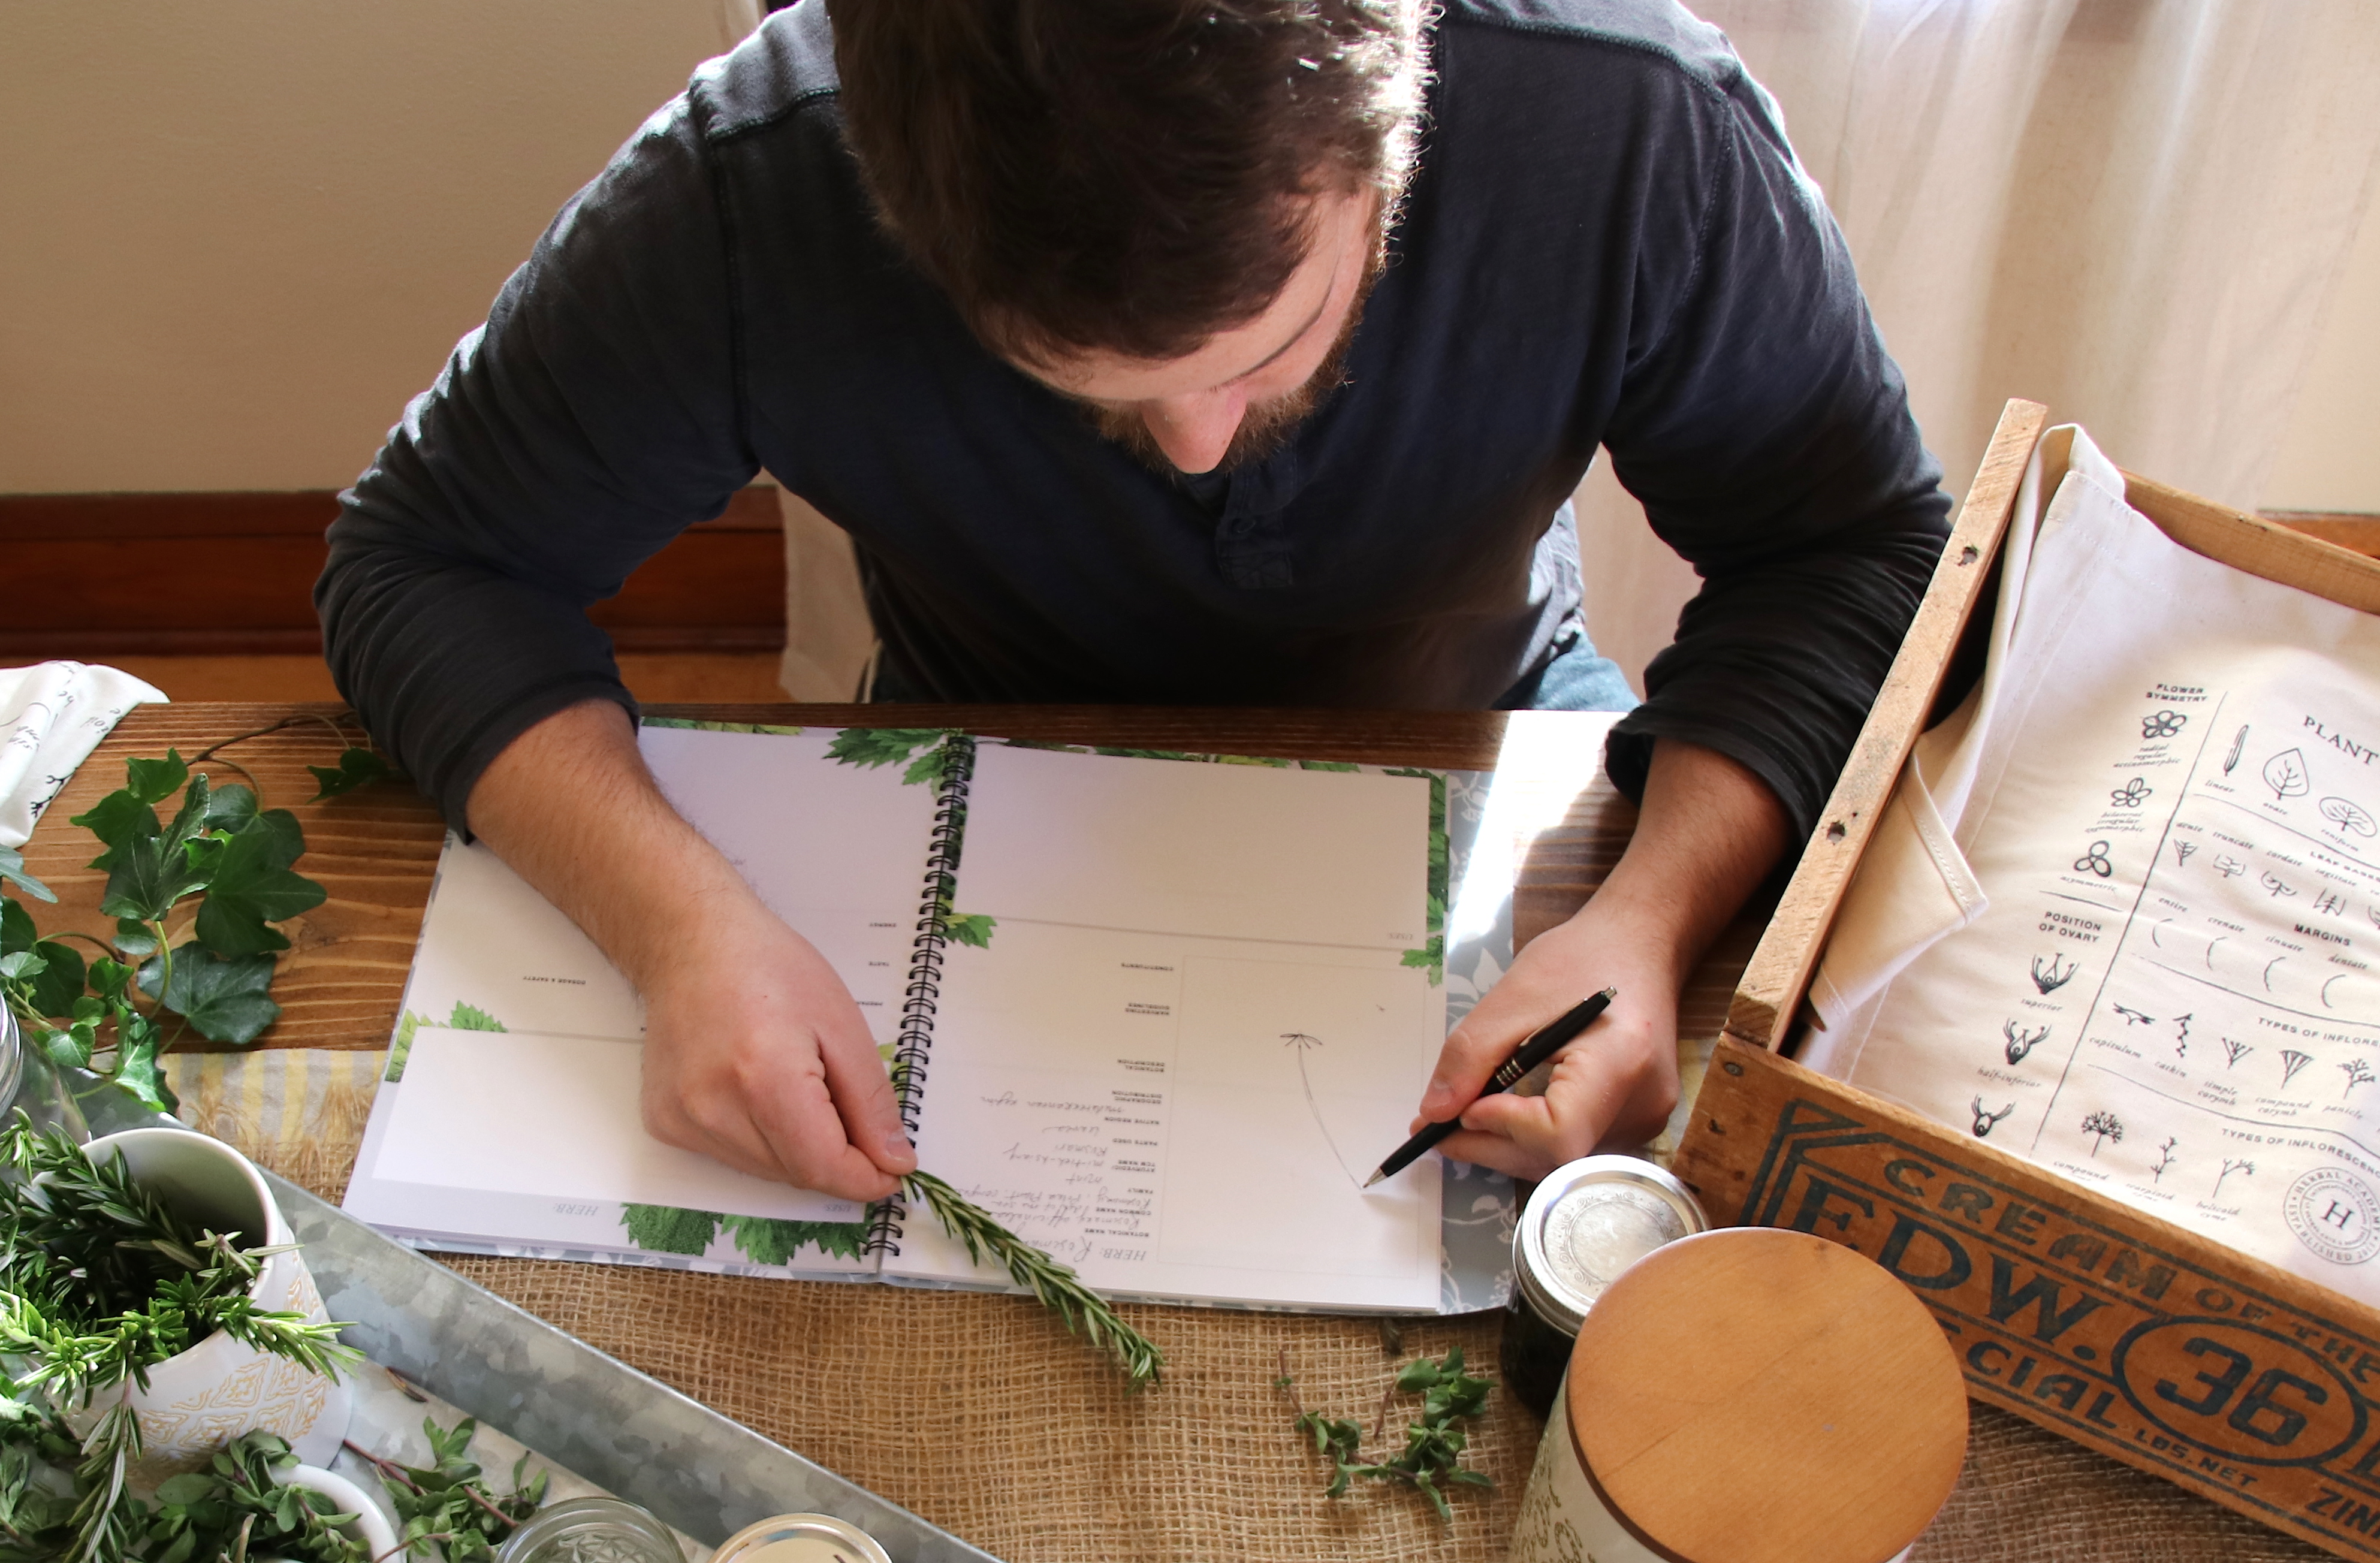 Our Materia Medica Short Course Is Back! | Herbal Academy | Our Materia Medica Short Course is back for a limited time. Learn more about it and how it can help advance your herbal studies today!